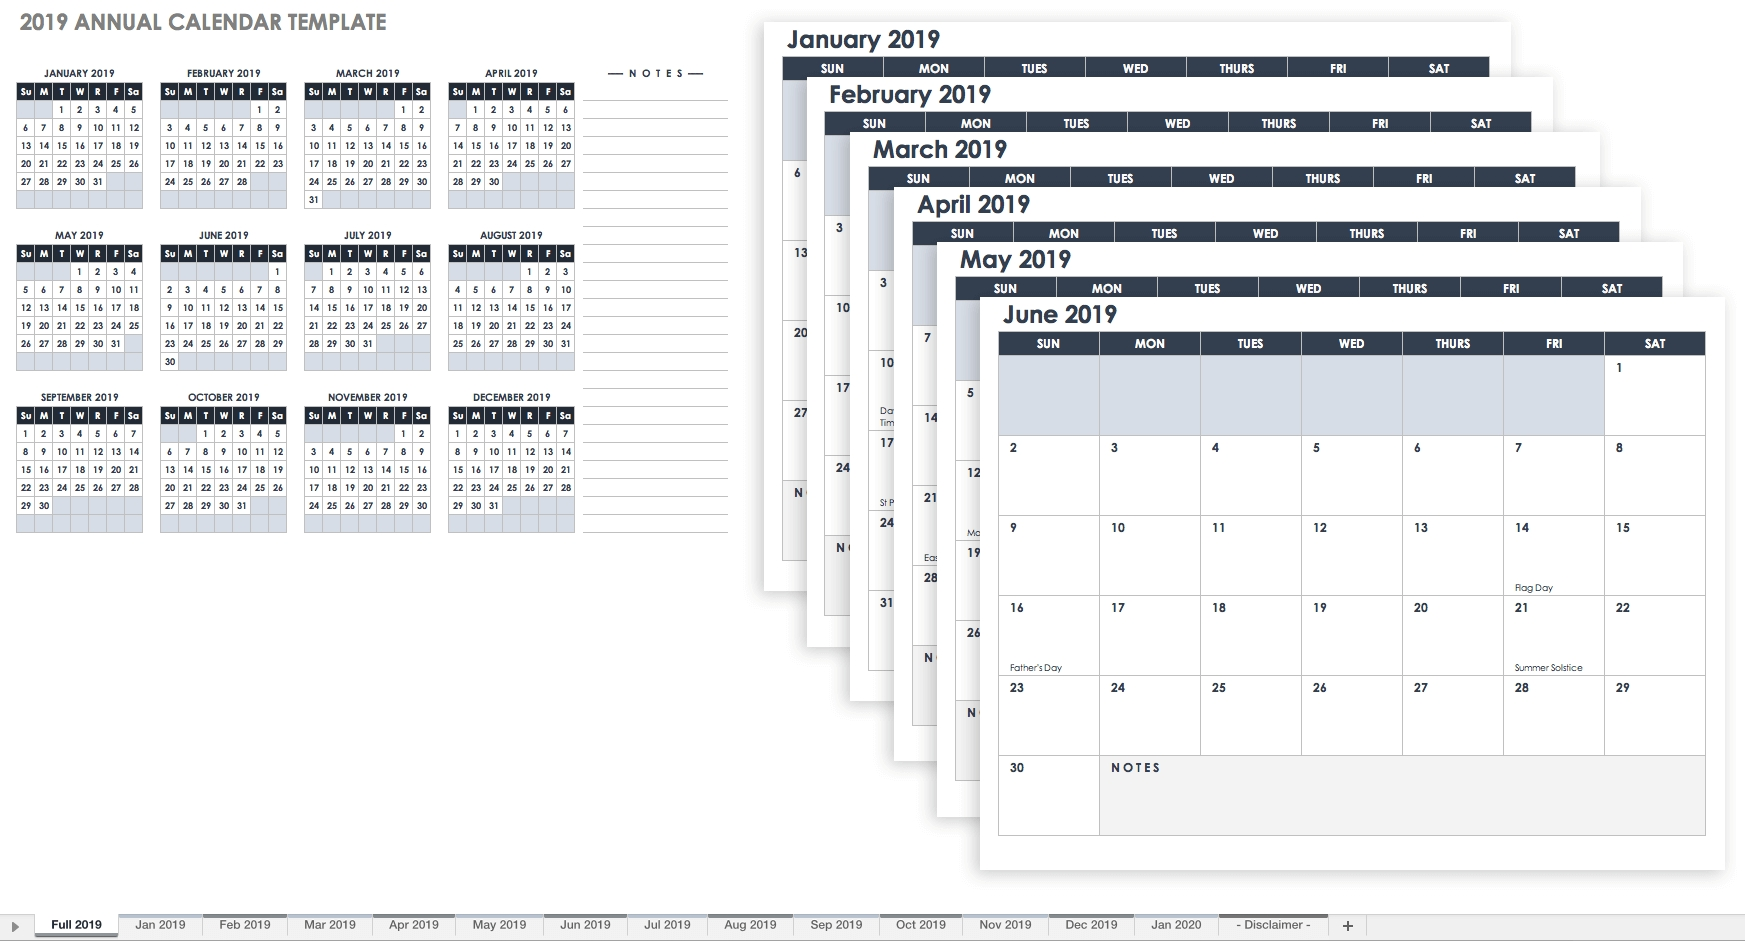 15 Free Monthly Calendar Templates | Smartsheet Calendar 2019 Excel Starting Monday